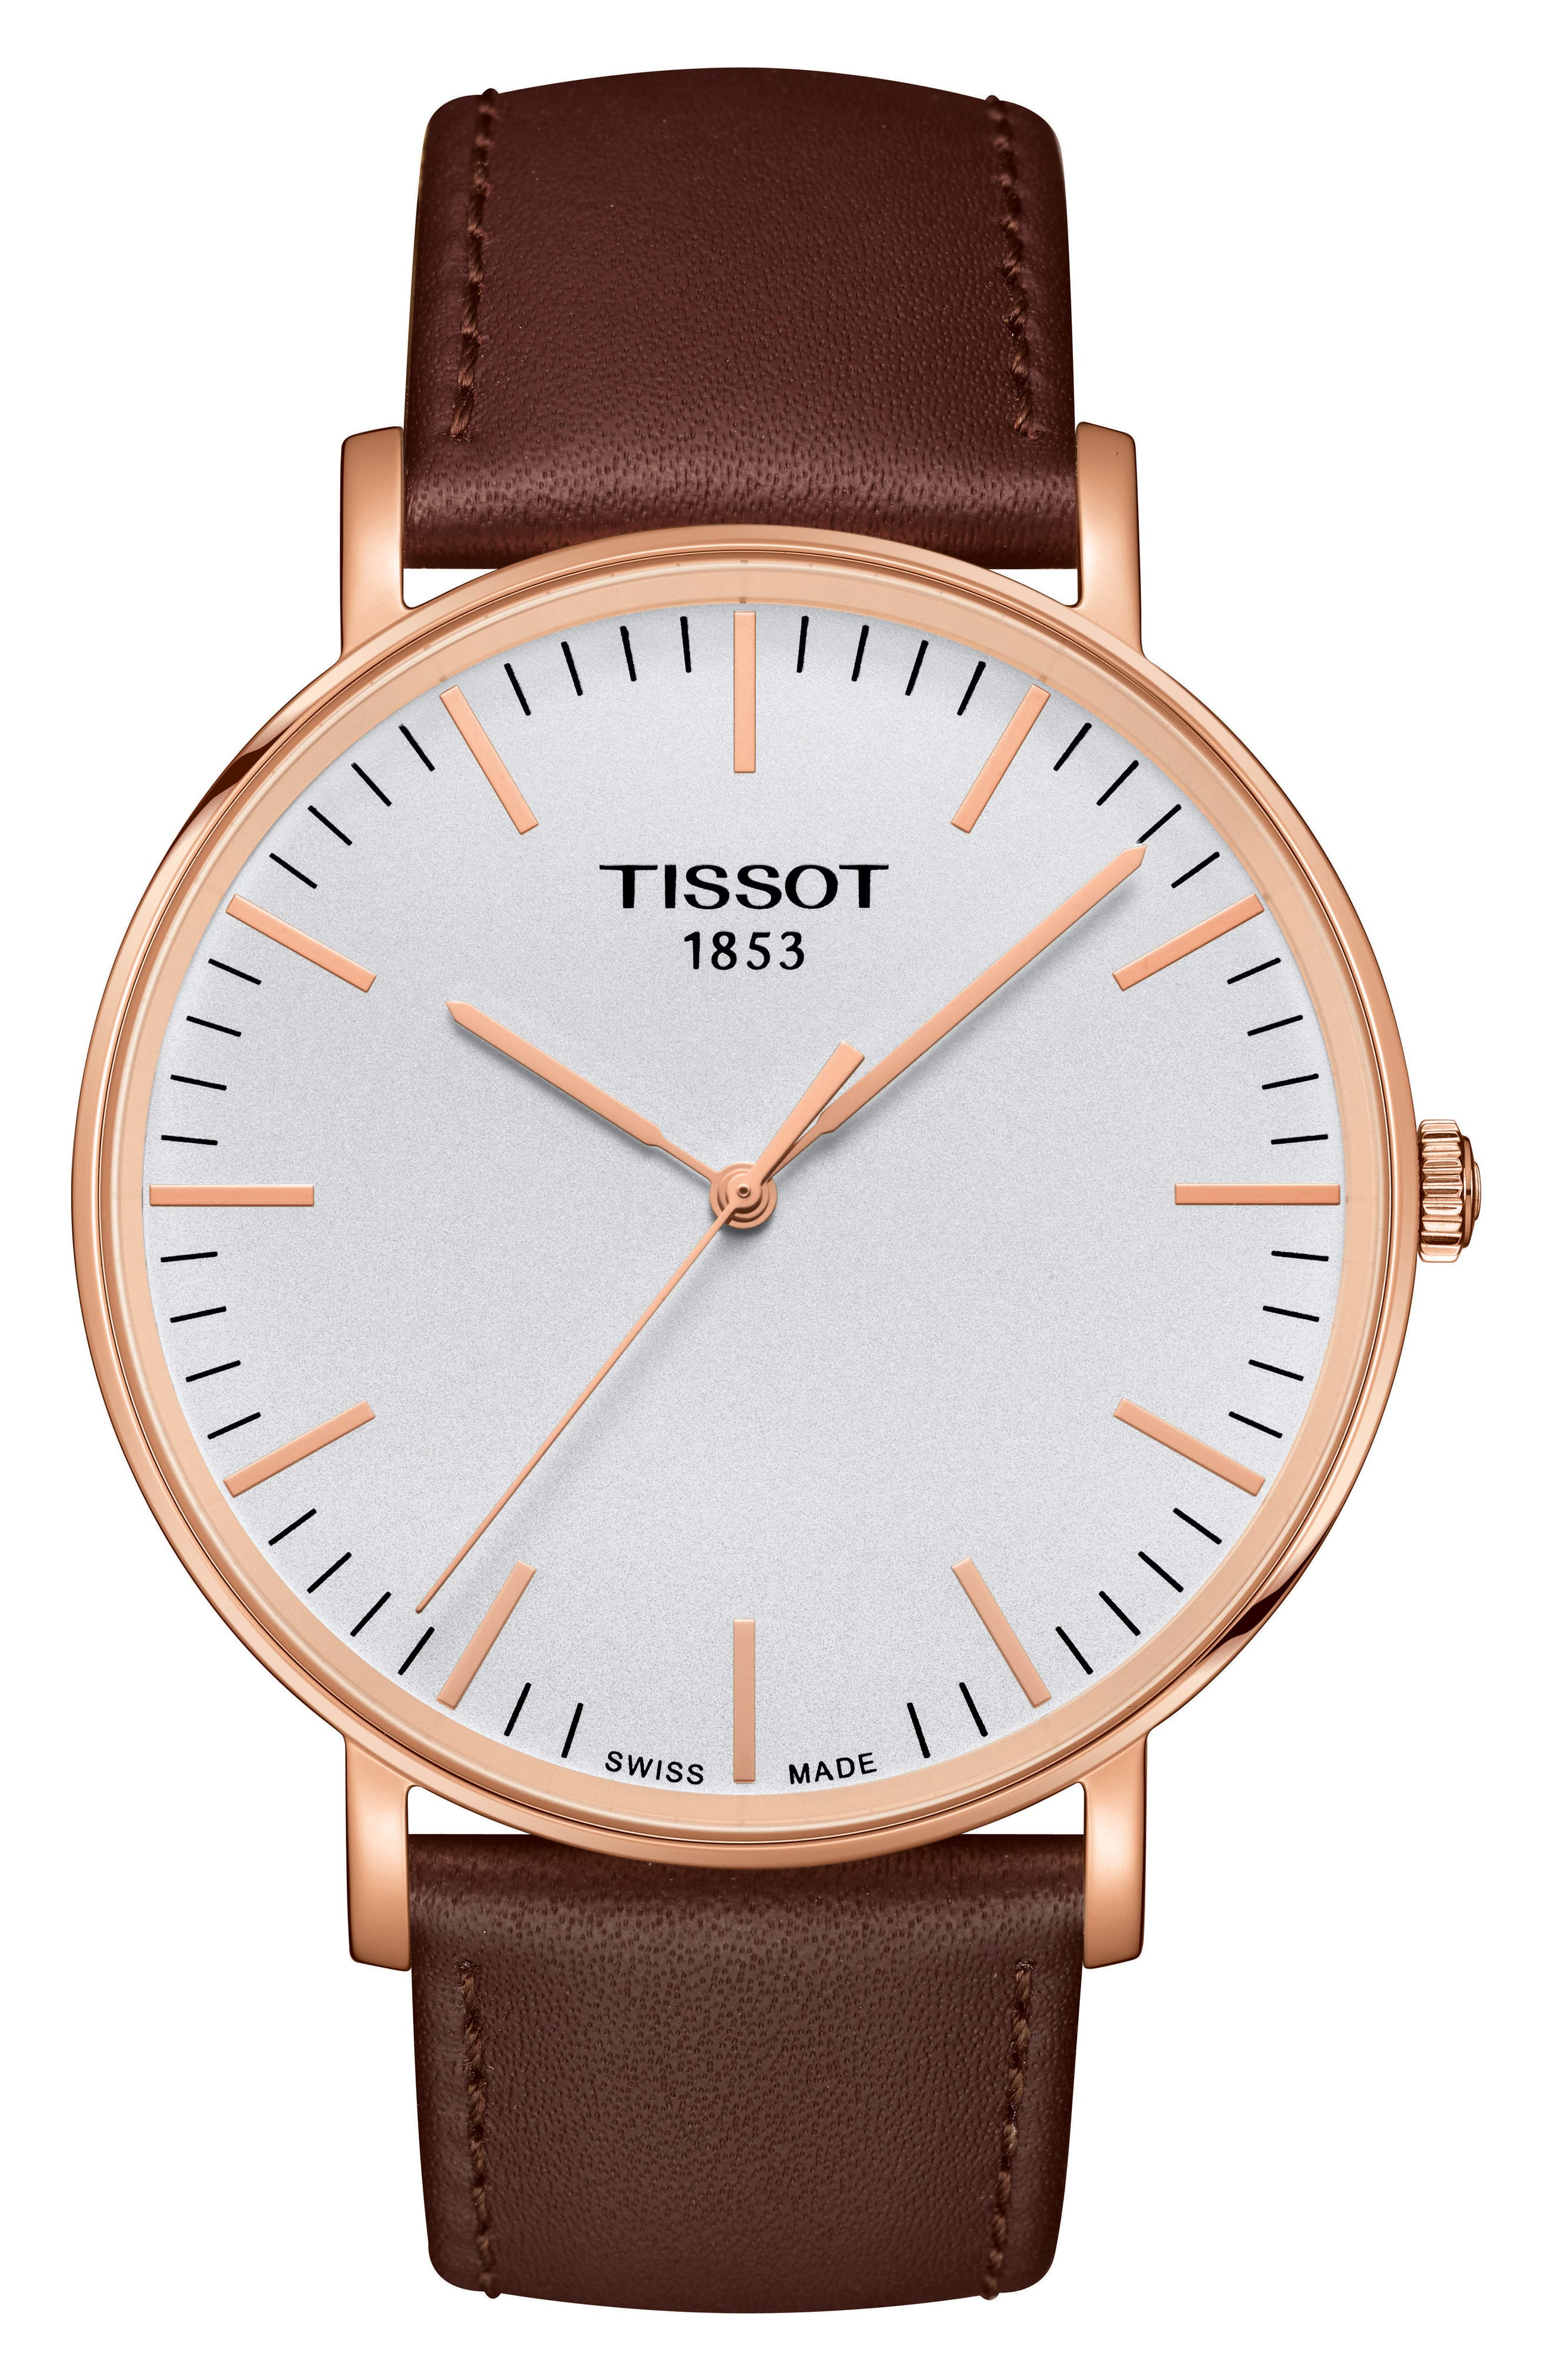 TISSOT, Everytime Leather Strap Watch, 42mm, Main thumbnail 1, color, BROWN/ SILVER/ ROSE GOLD